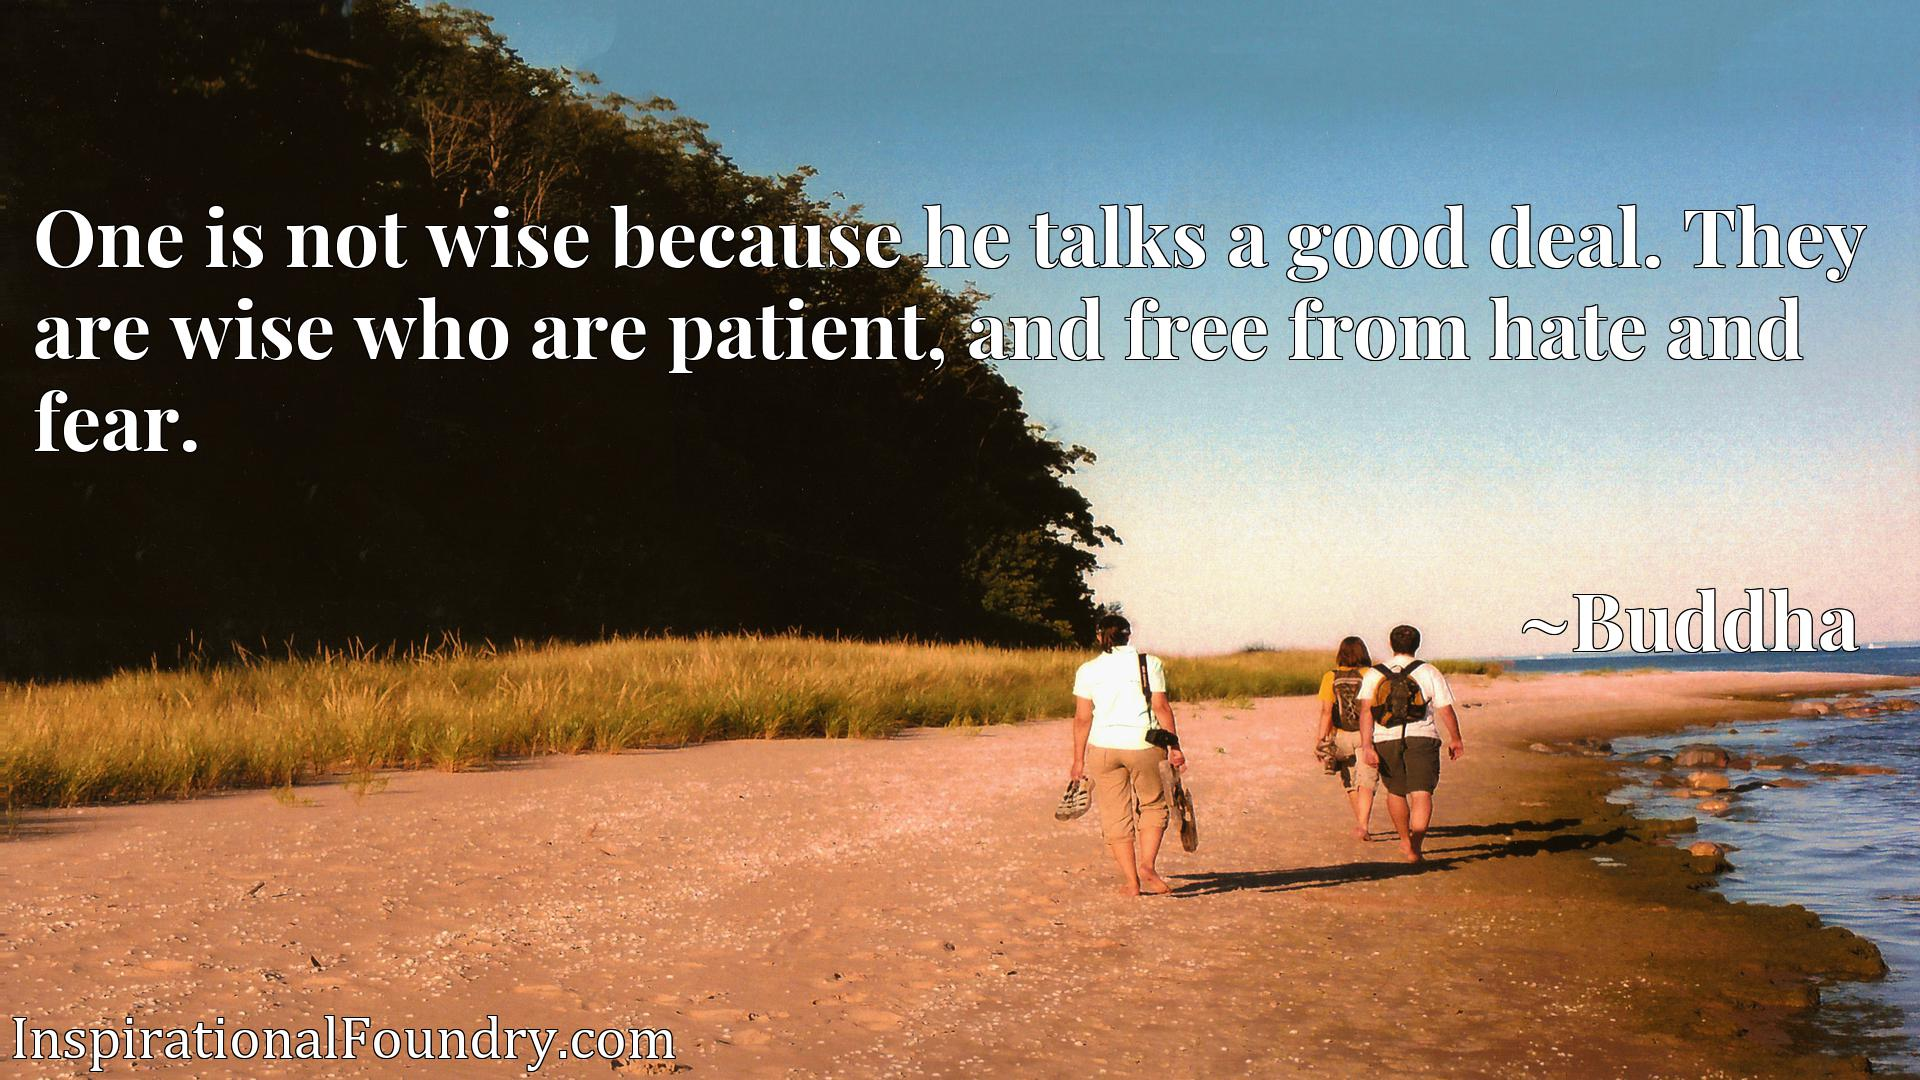 Quote Picture :One is not wise because he talks a good deal. They are wise who are patient, and free from hate and fear.